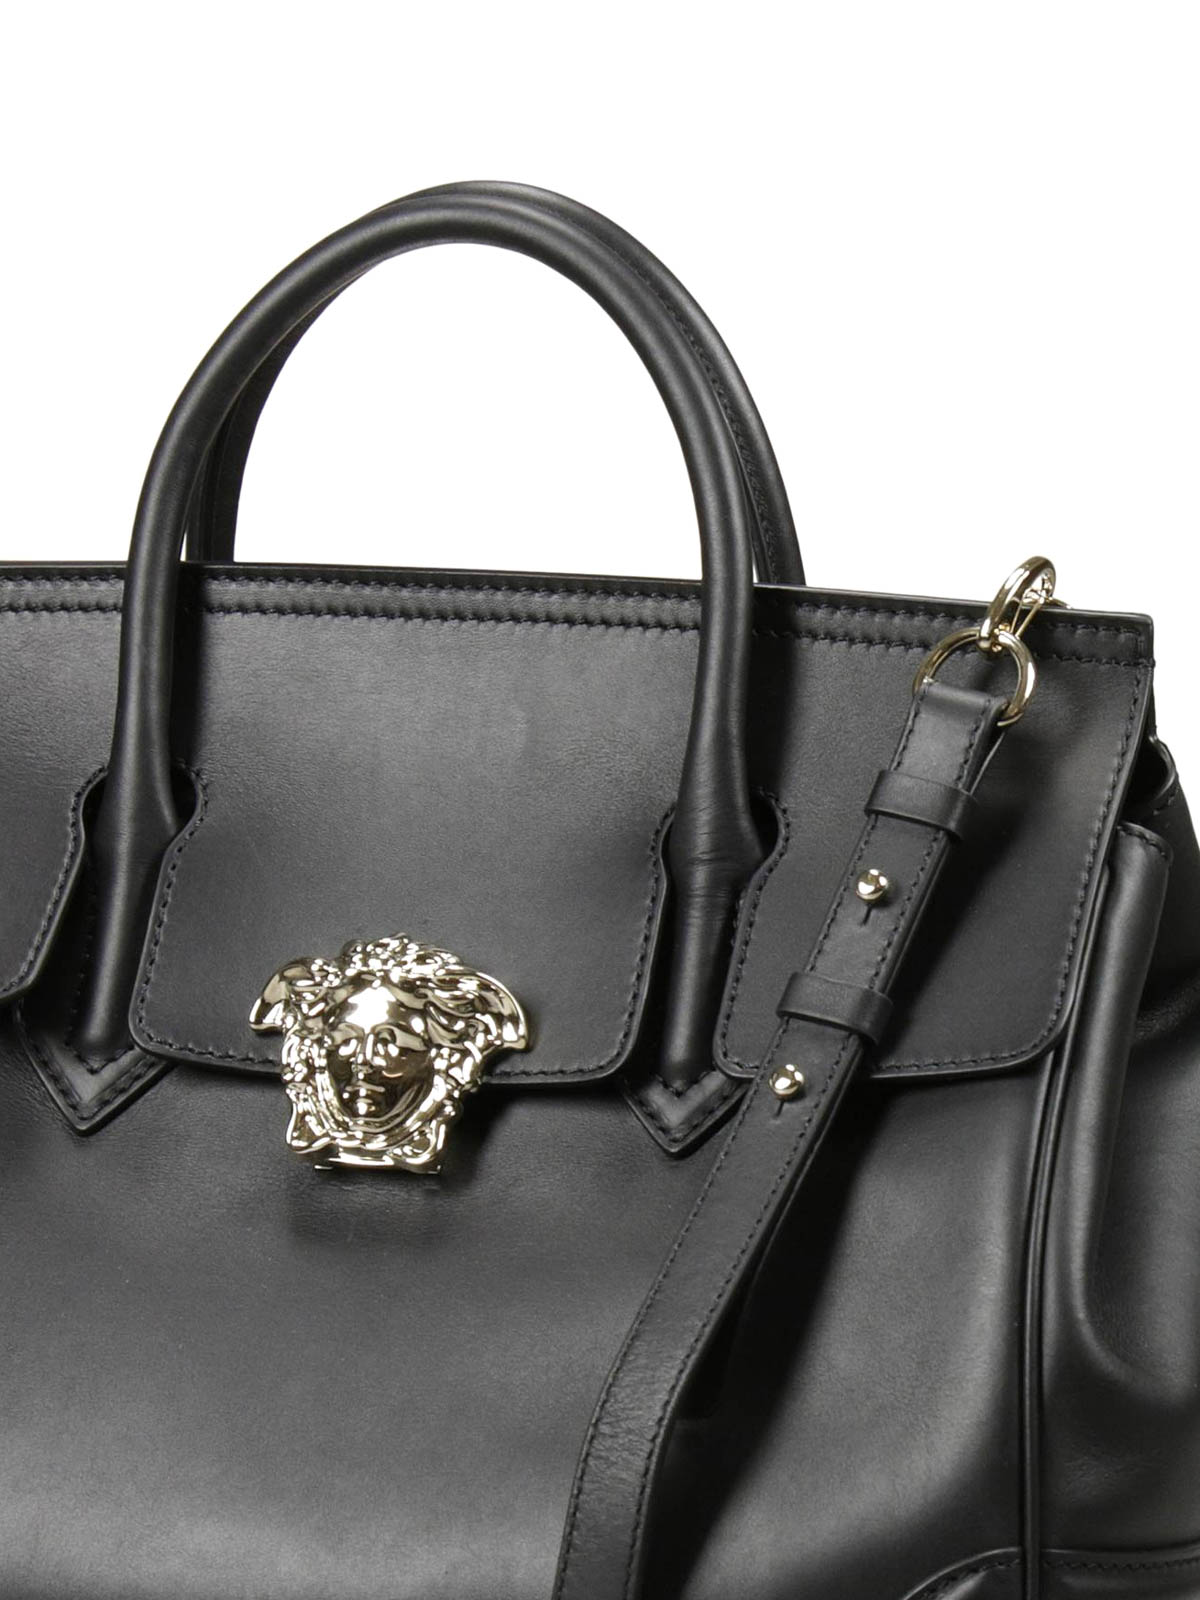 994ae41202 Versace - Palazzo Empire leather tote - totes bags - DBFF453 DSTVT